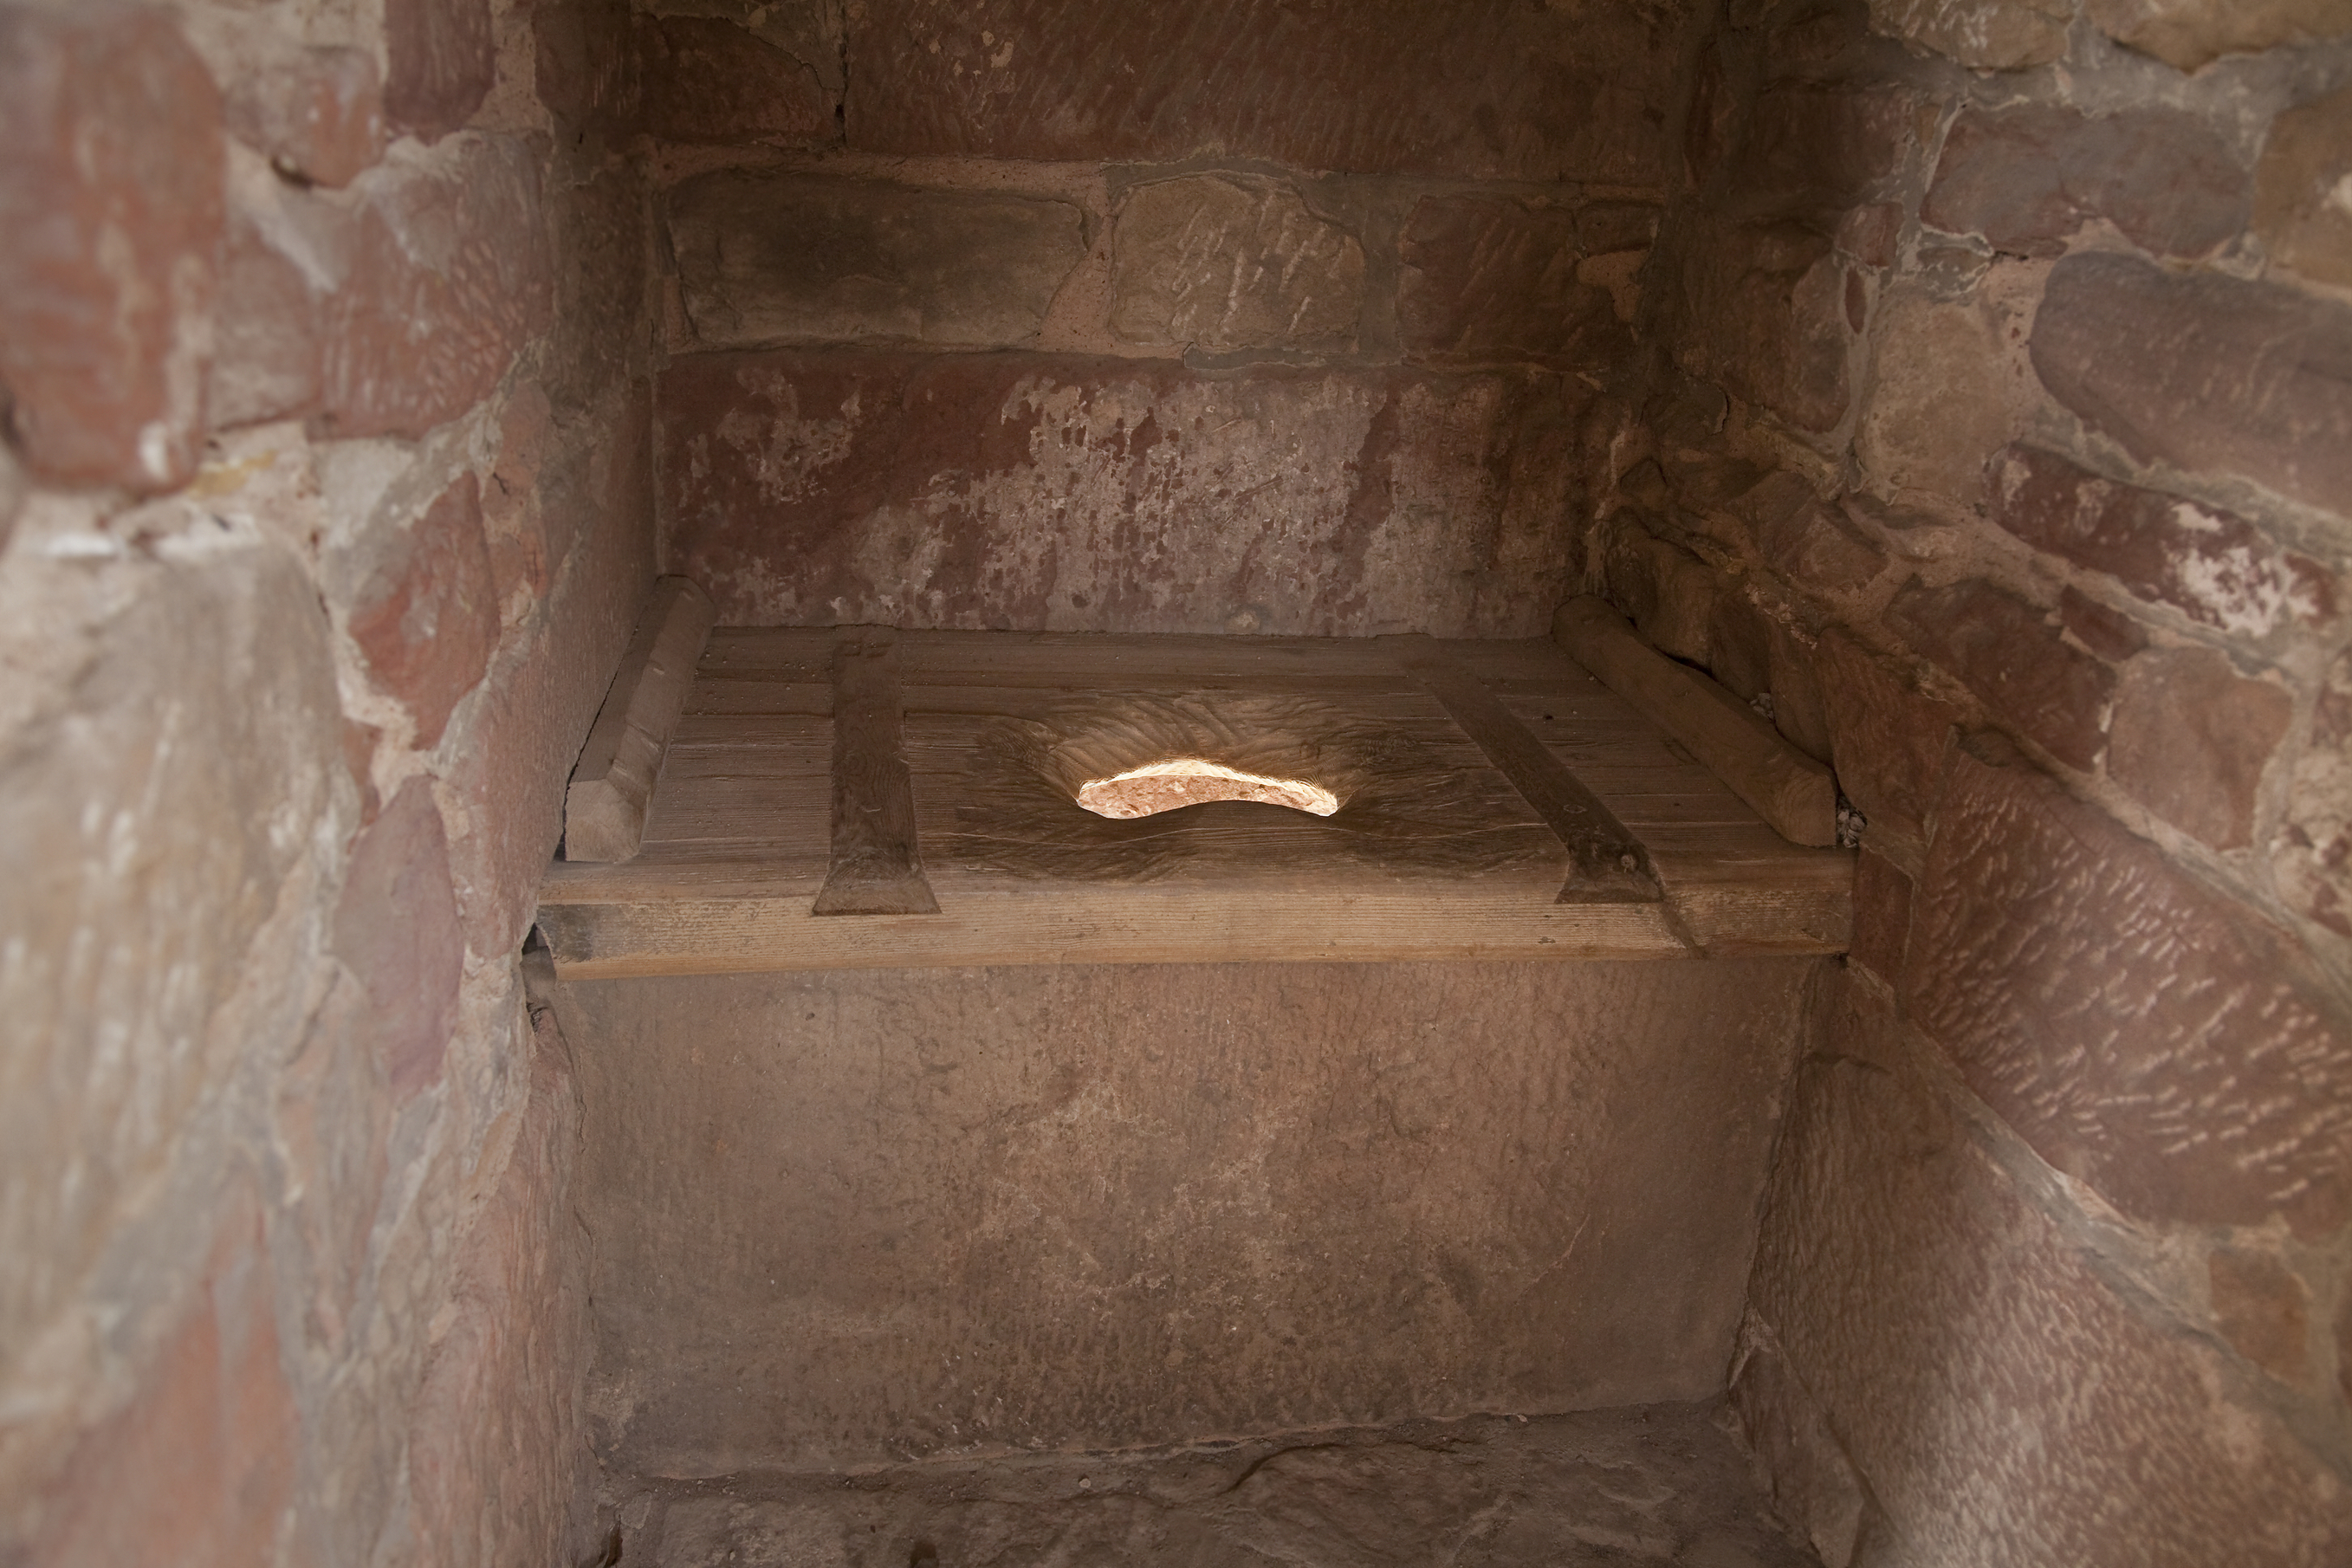 Medieval Toilet Light Is Shining Through From The Dungheap